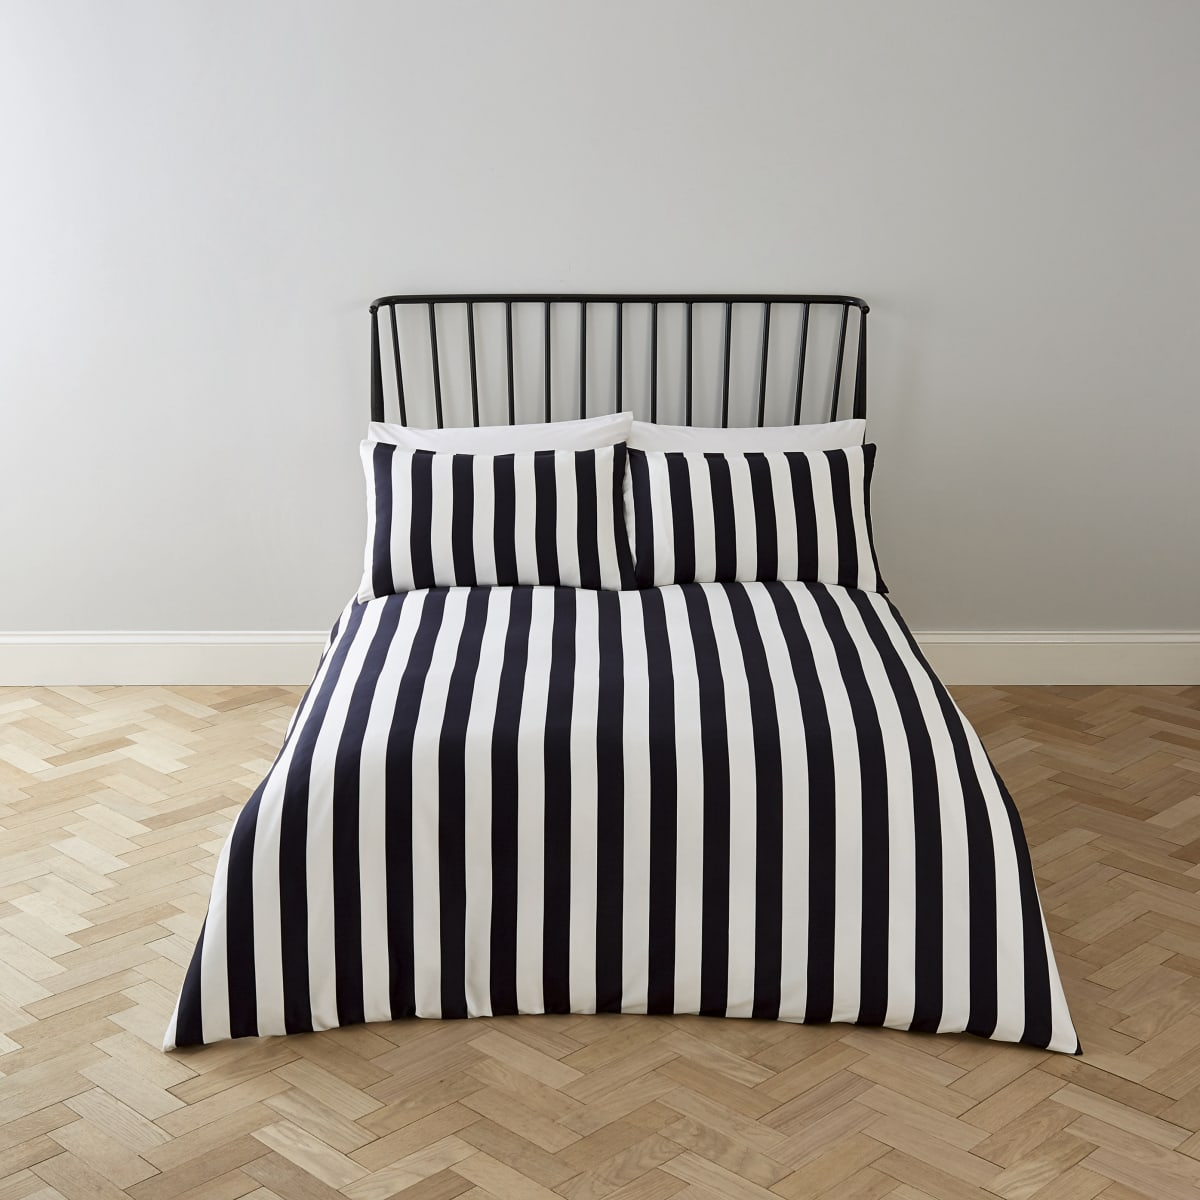 Black stripe print double duvet bed set